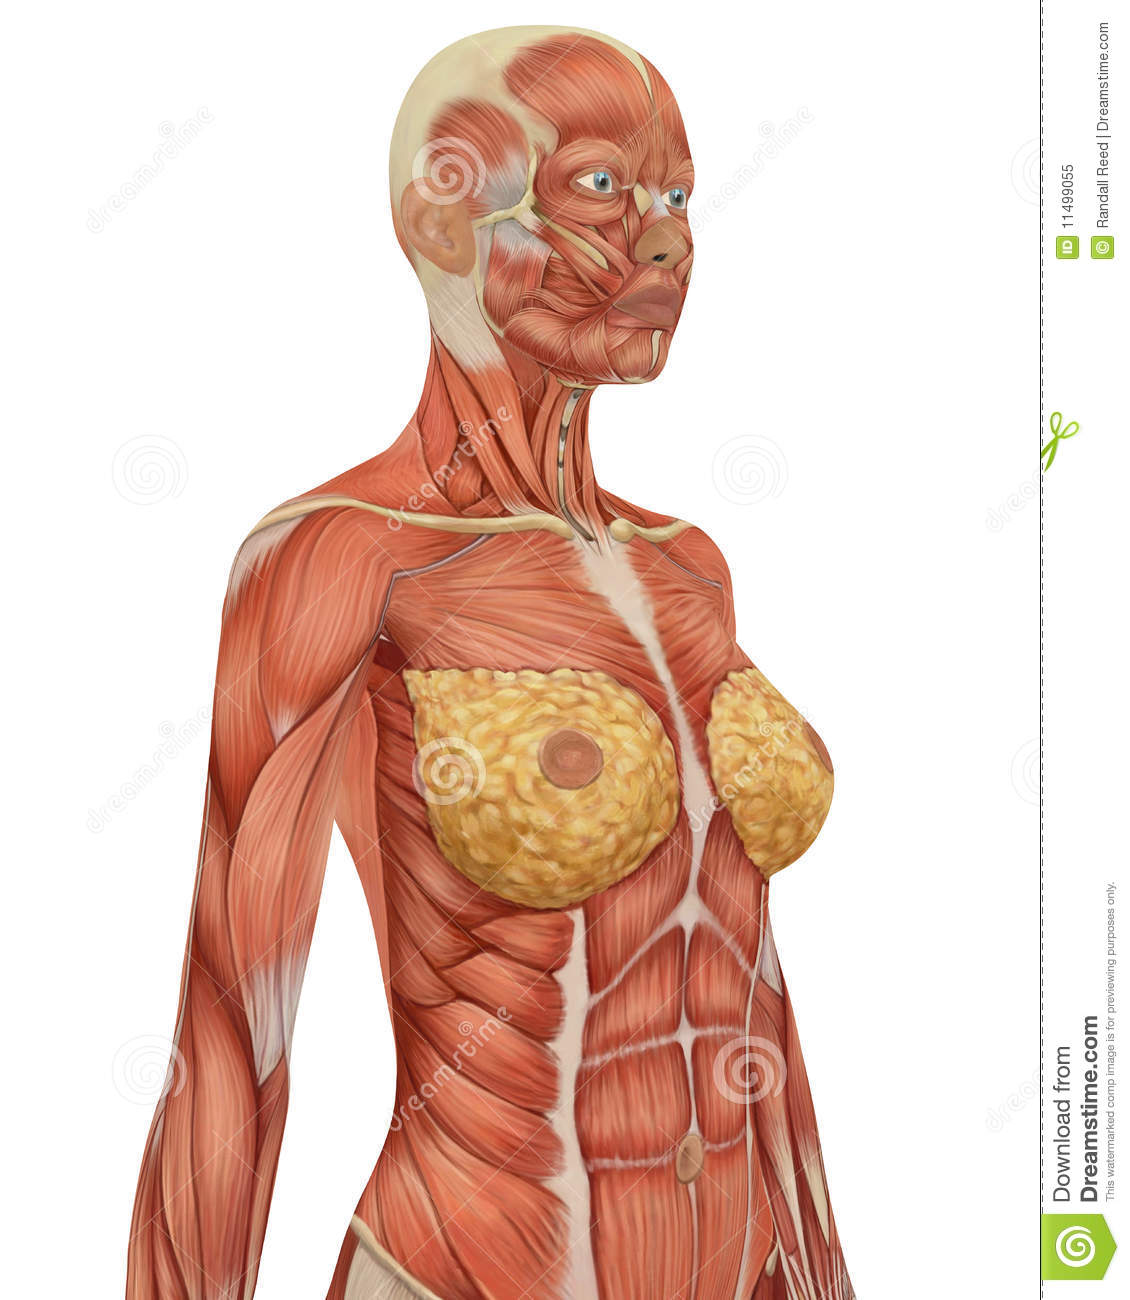 Upper Body Of Female Anatomy Diagram - DIY Enthusiasts Wiring Diagrams •